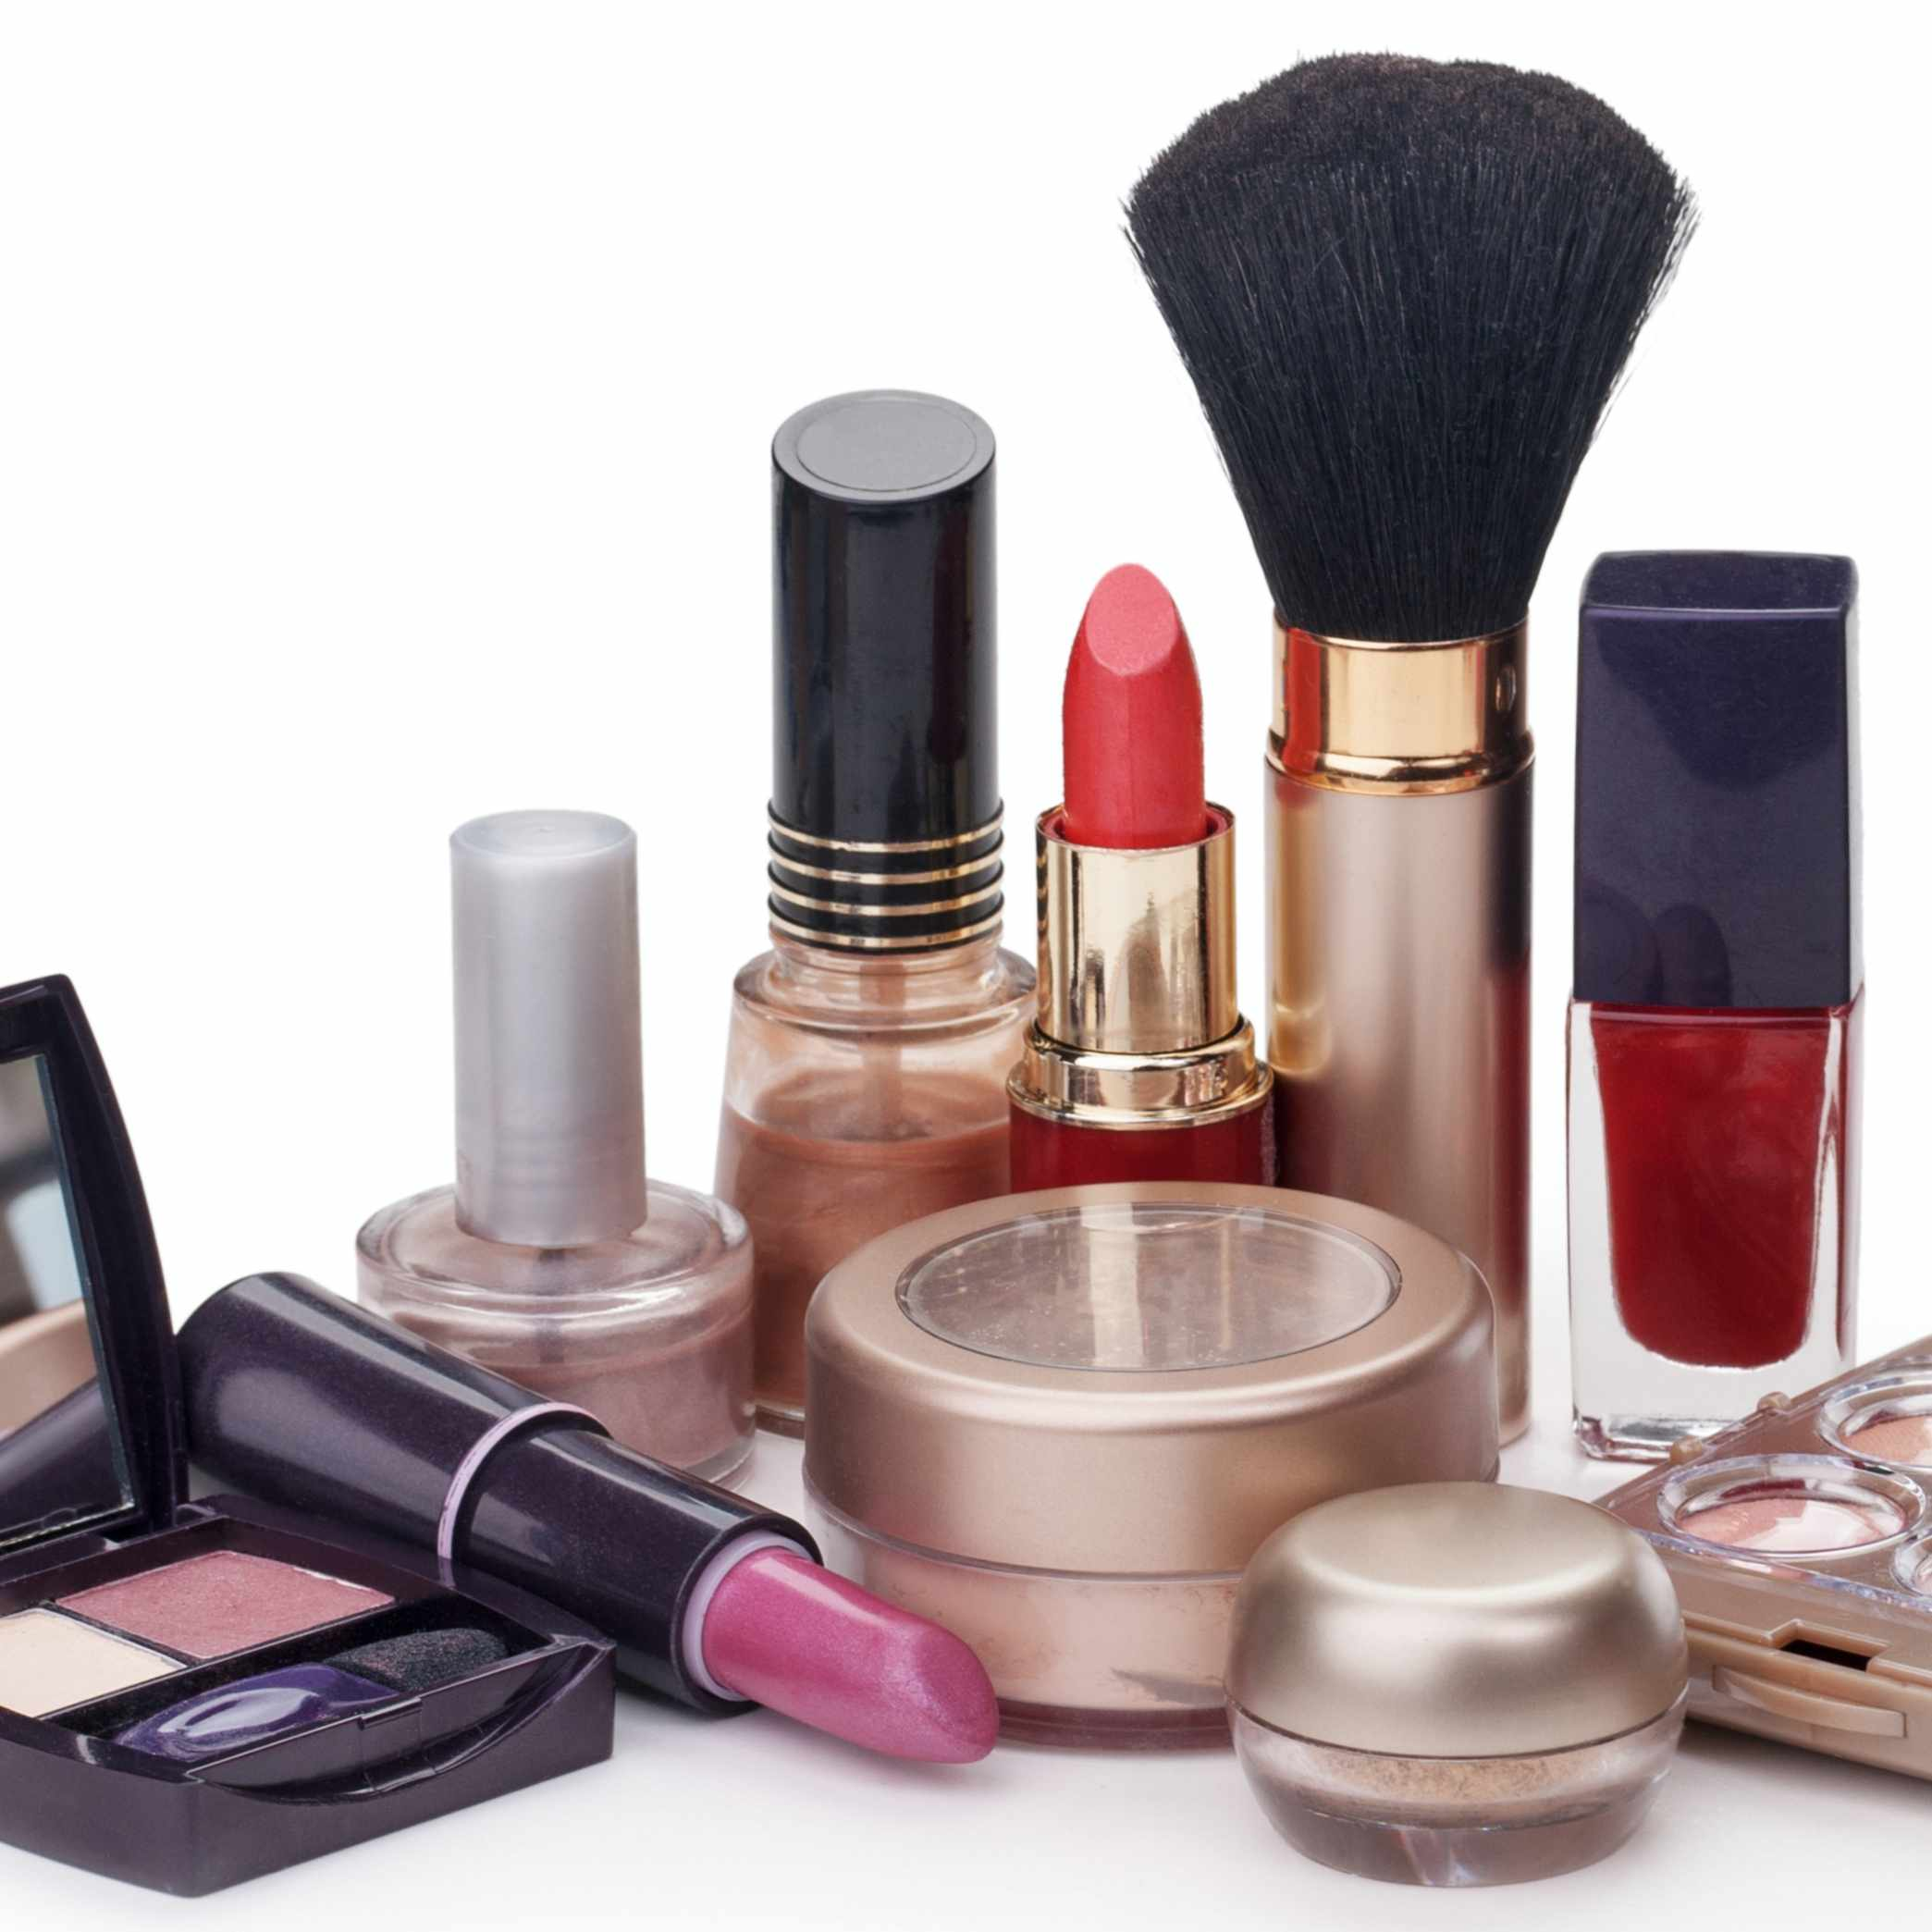 a collection of make up arranged on a table, including lipstick and eyeshadow